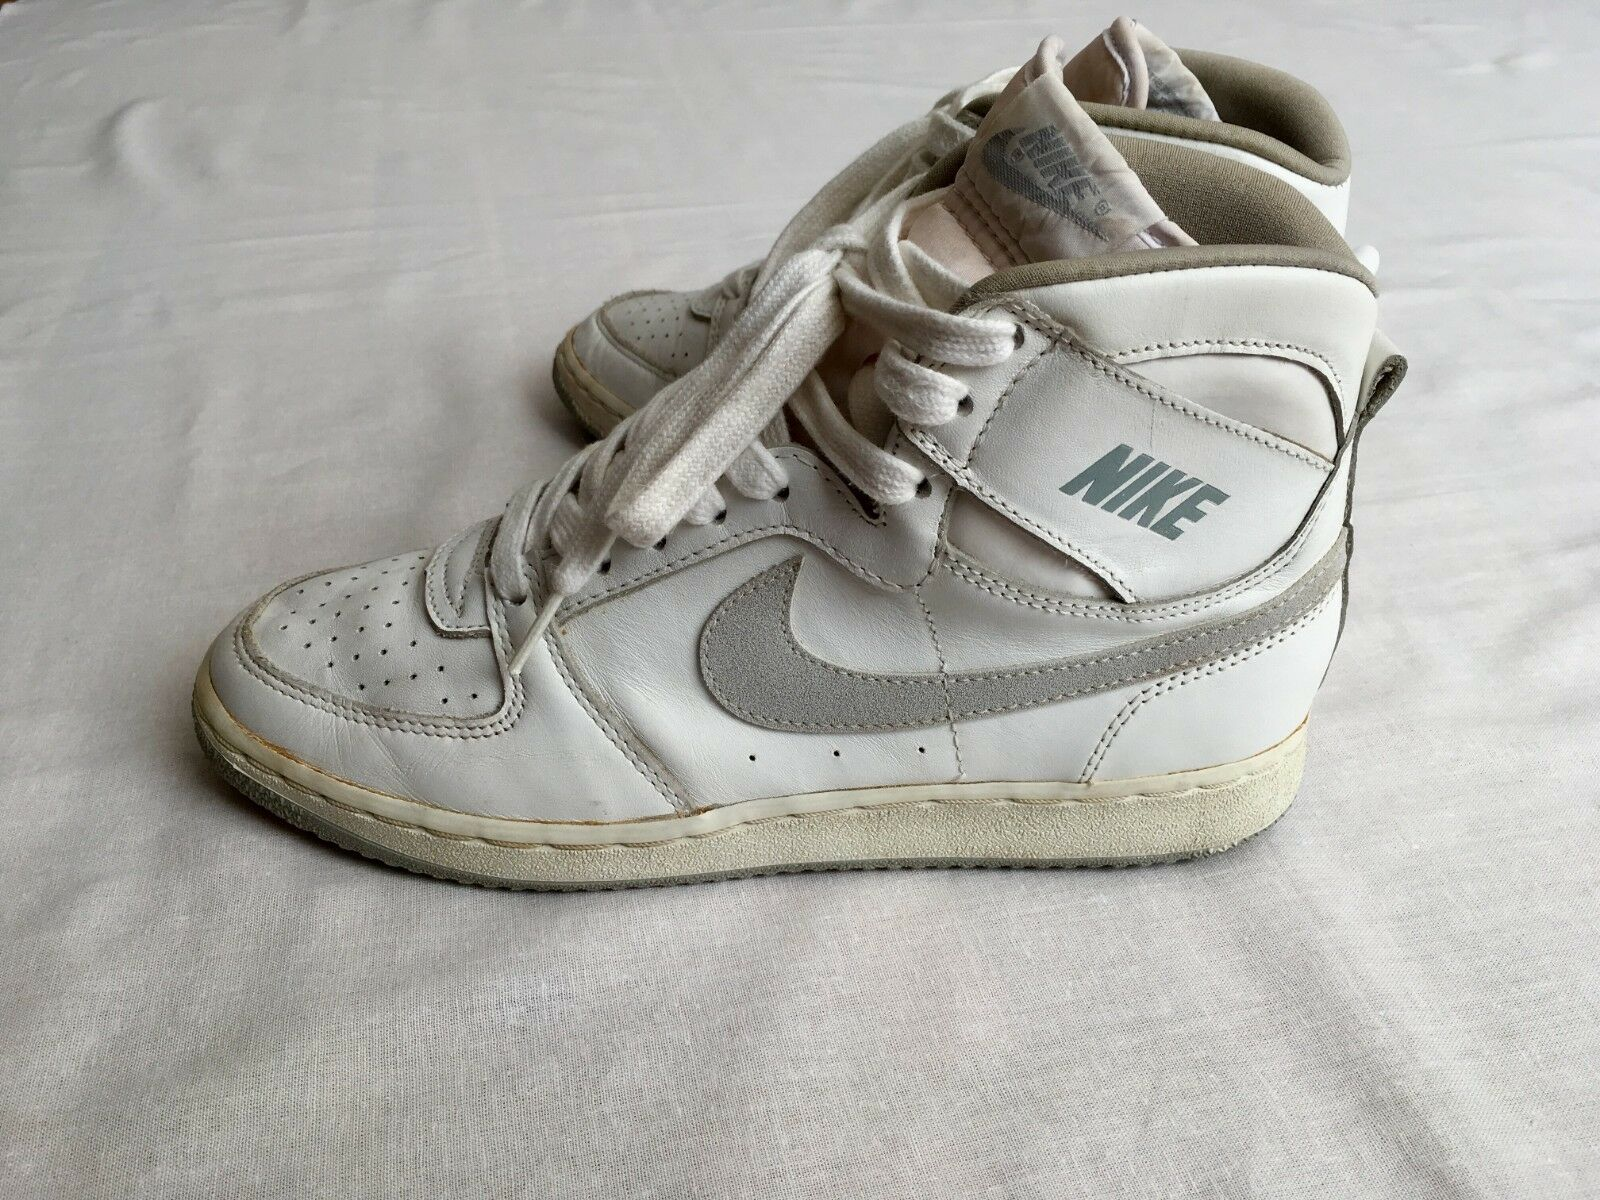 Vintage RARE 1986 Nike Convention size US6.5 (in fact 25.5cm) MINT